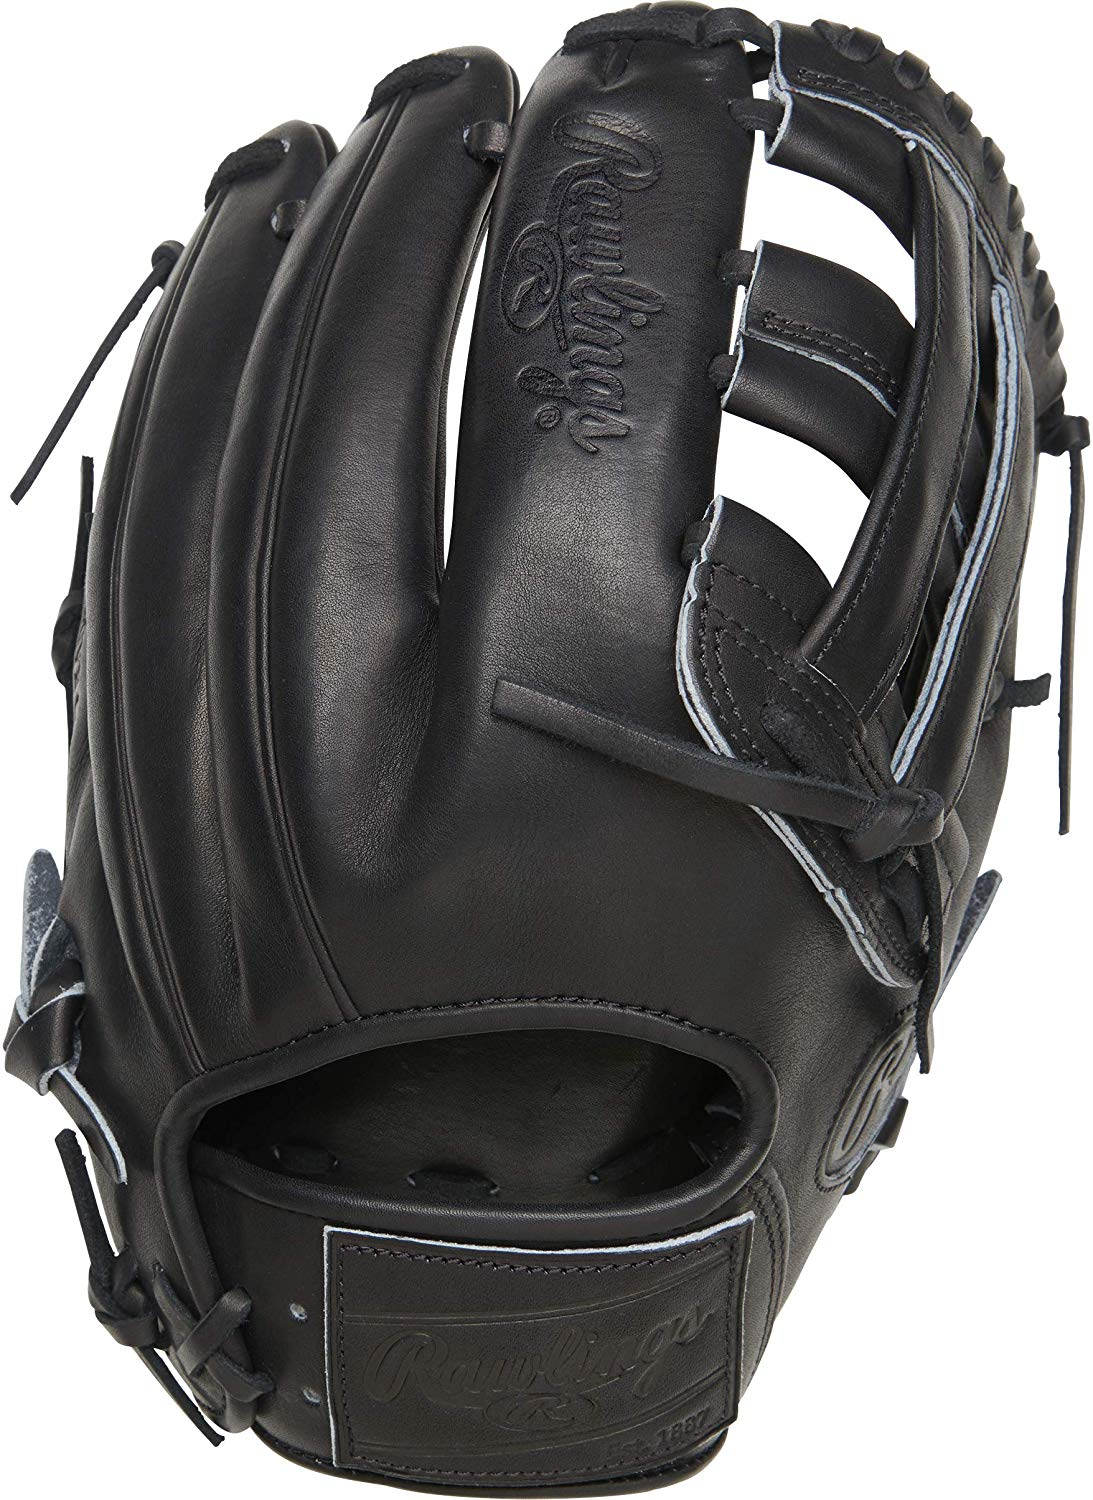 rawlings-pro-label-black-baseball-glove-12-25-right-hand-throw PROKB17-6B-RightHandThrow  083321691386 <p>12.25 pattern Limited Edition Kris Bryant Pattern Indent Stamping On Shell